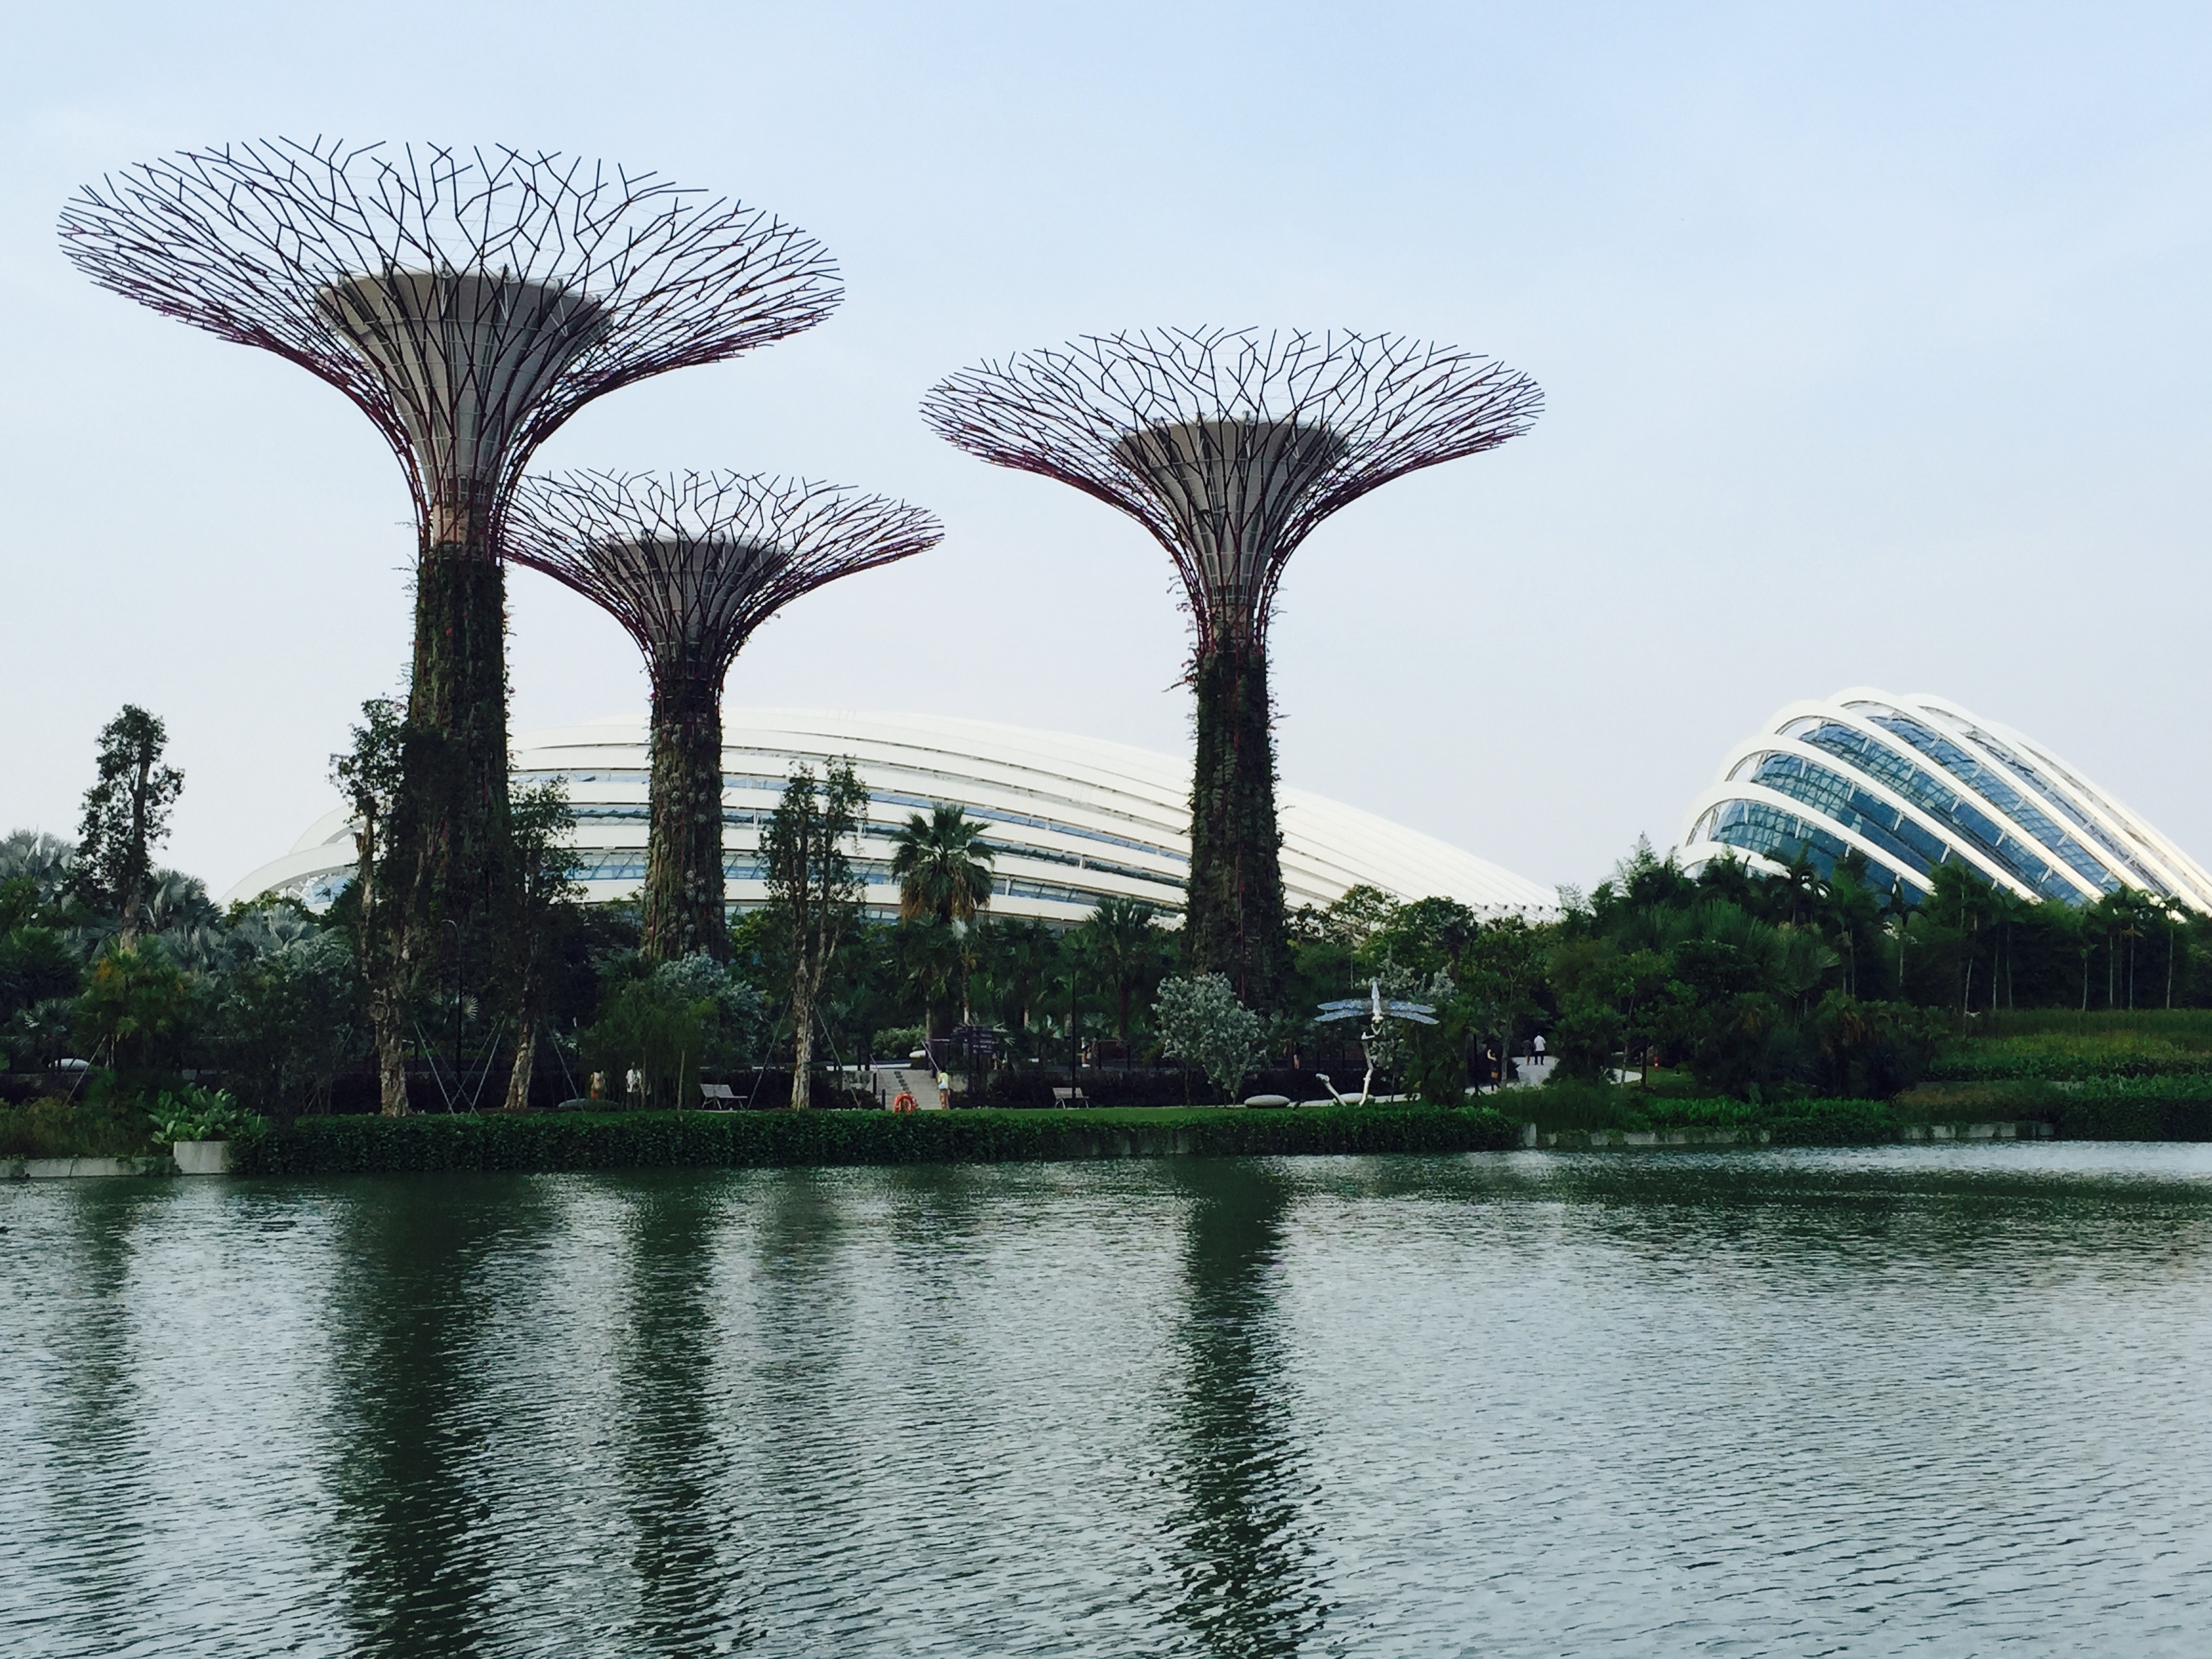 Singapore is NOT a concrete Jungle